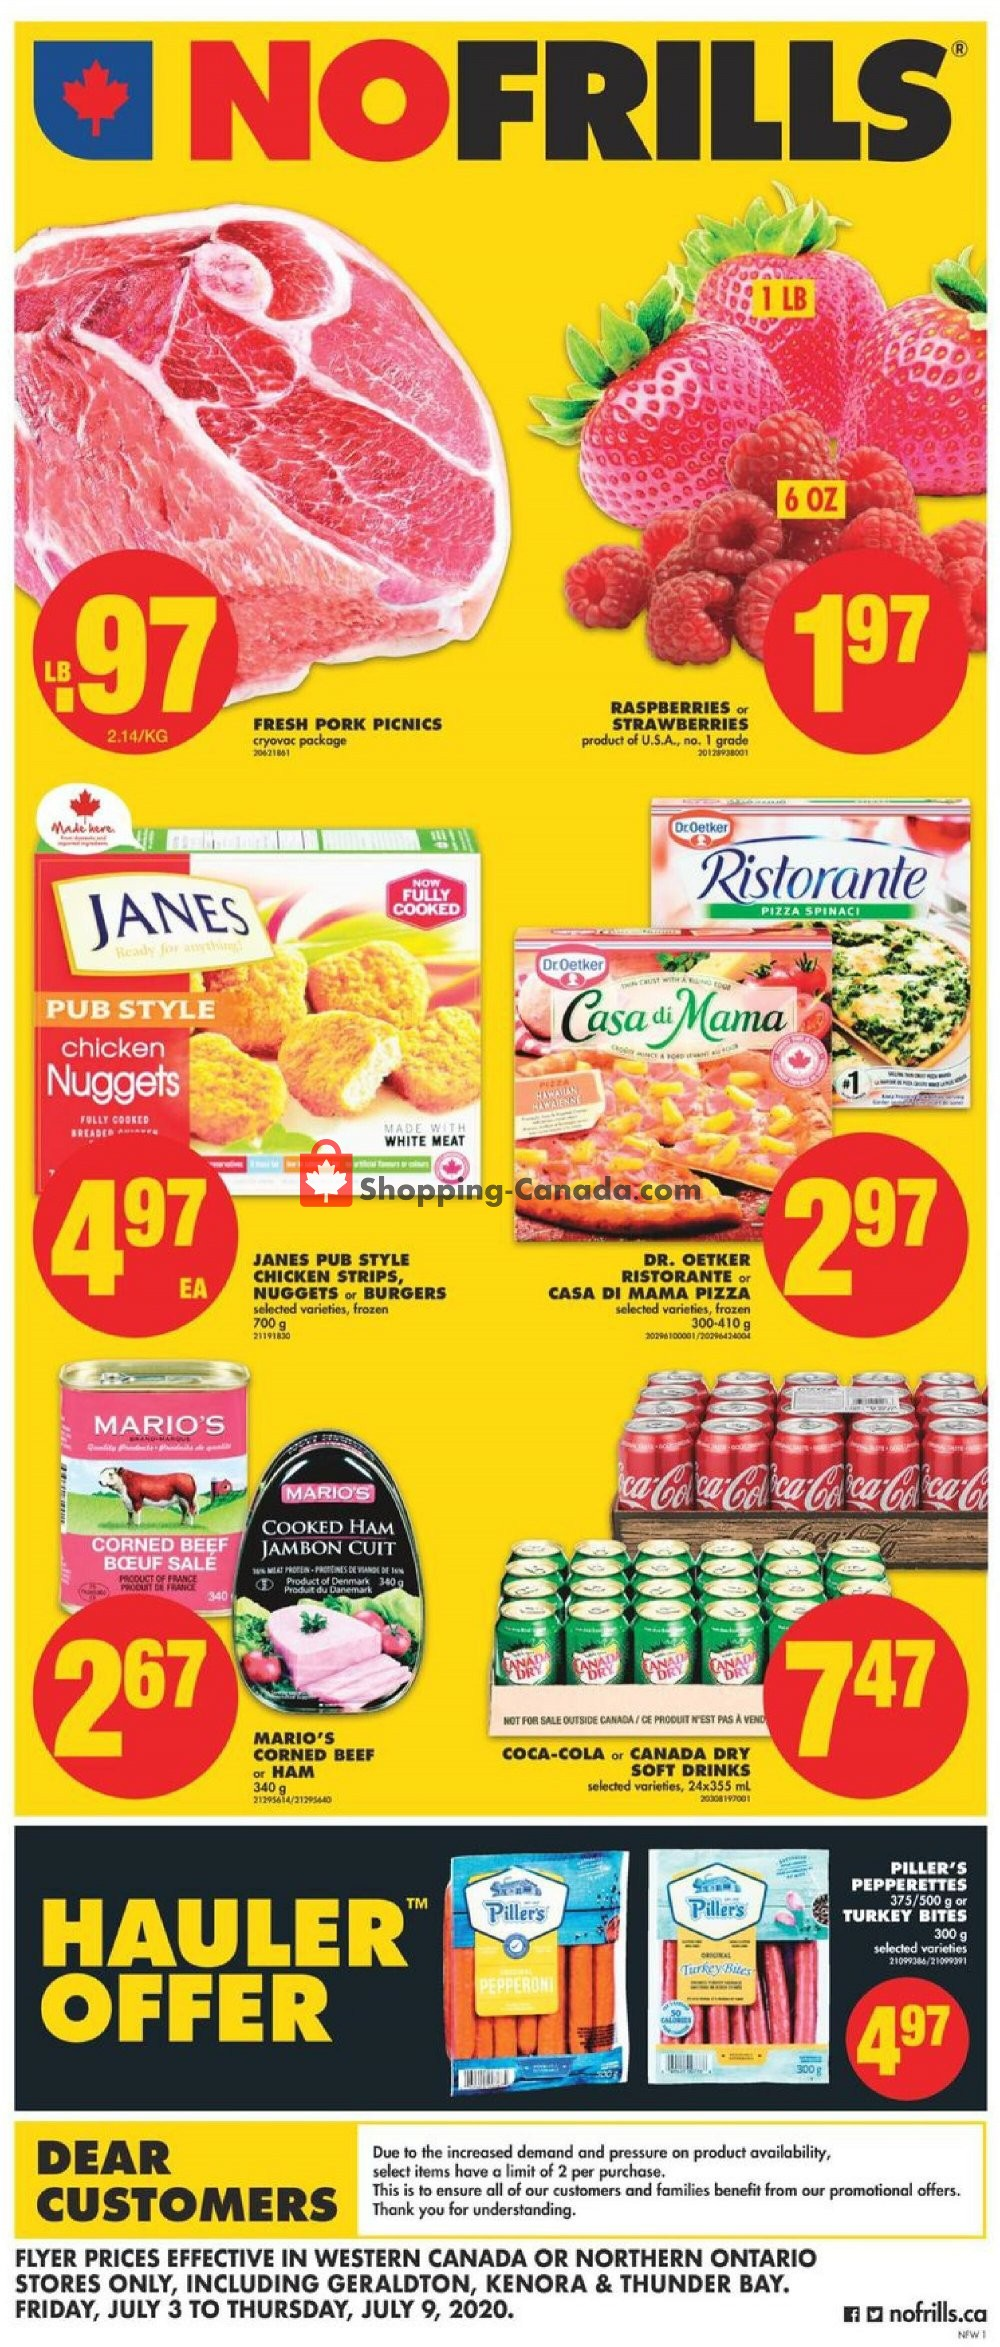 Flyer No Frills Canada - from Friday July 3, 2020 to Thursday July 9, 2020